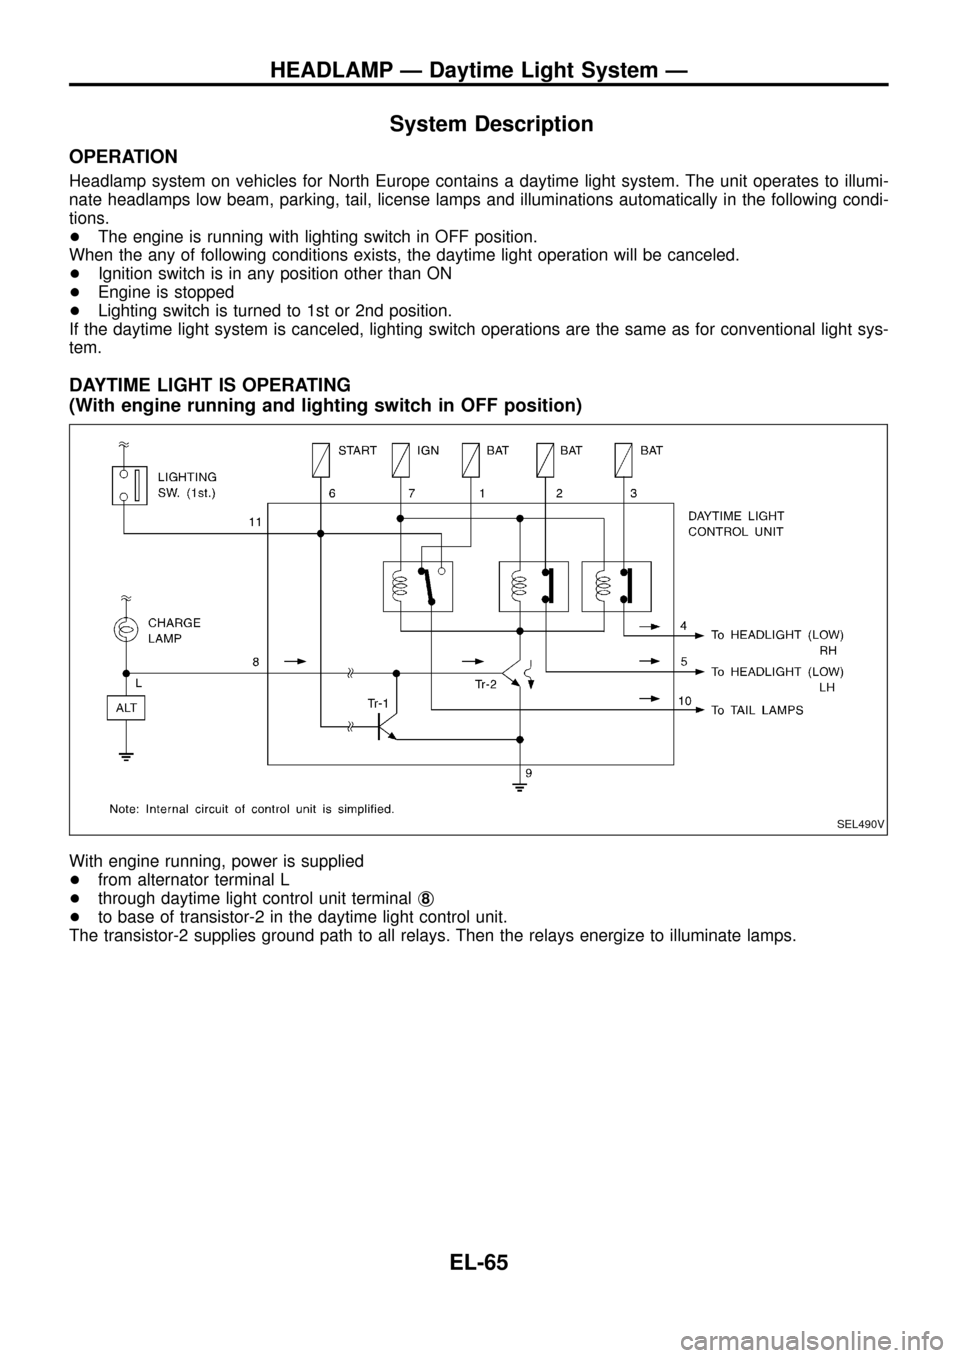 NISSAN PATROL 1998 Y61 / 5.G Electrical System Workshop Manual System Description OPERATION Headlamp system on vehicles for North Europe contains a daytime light system. The unit operates to illumi- nate headlamps low beam, parking, tail, license lamps and illumi